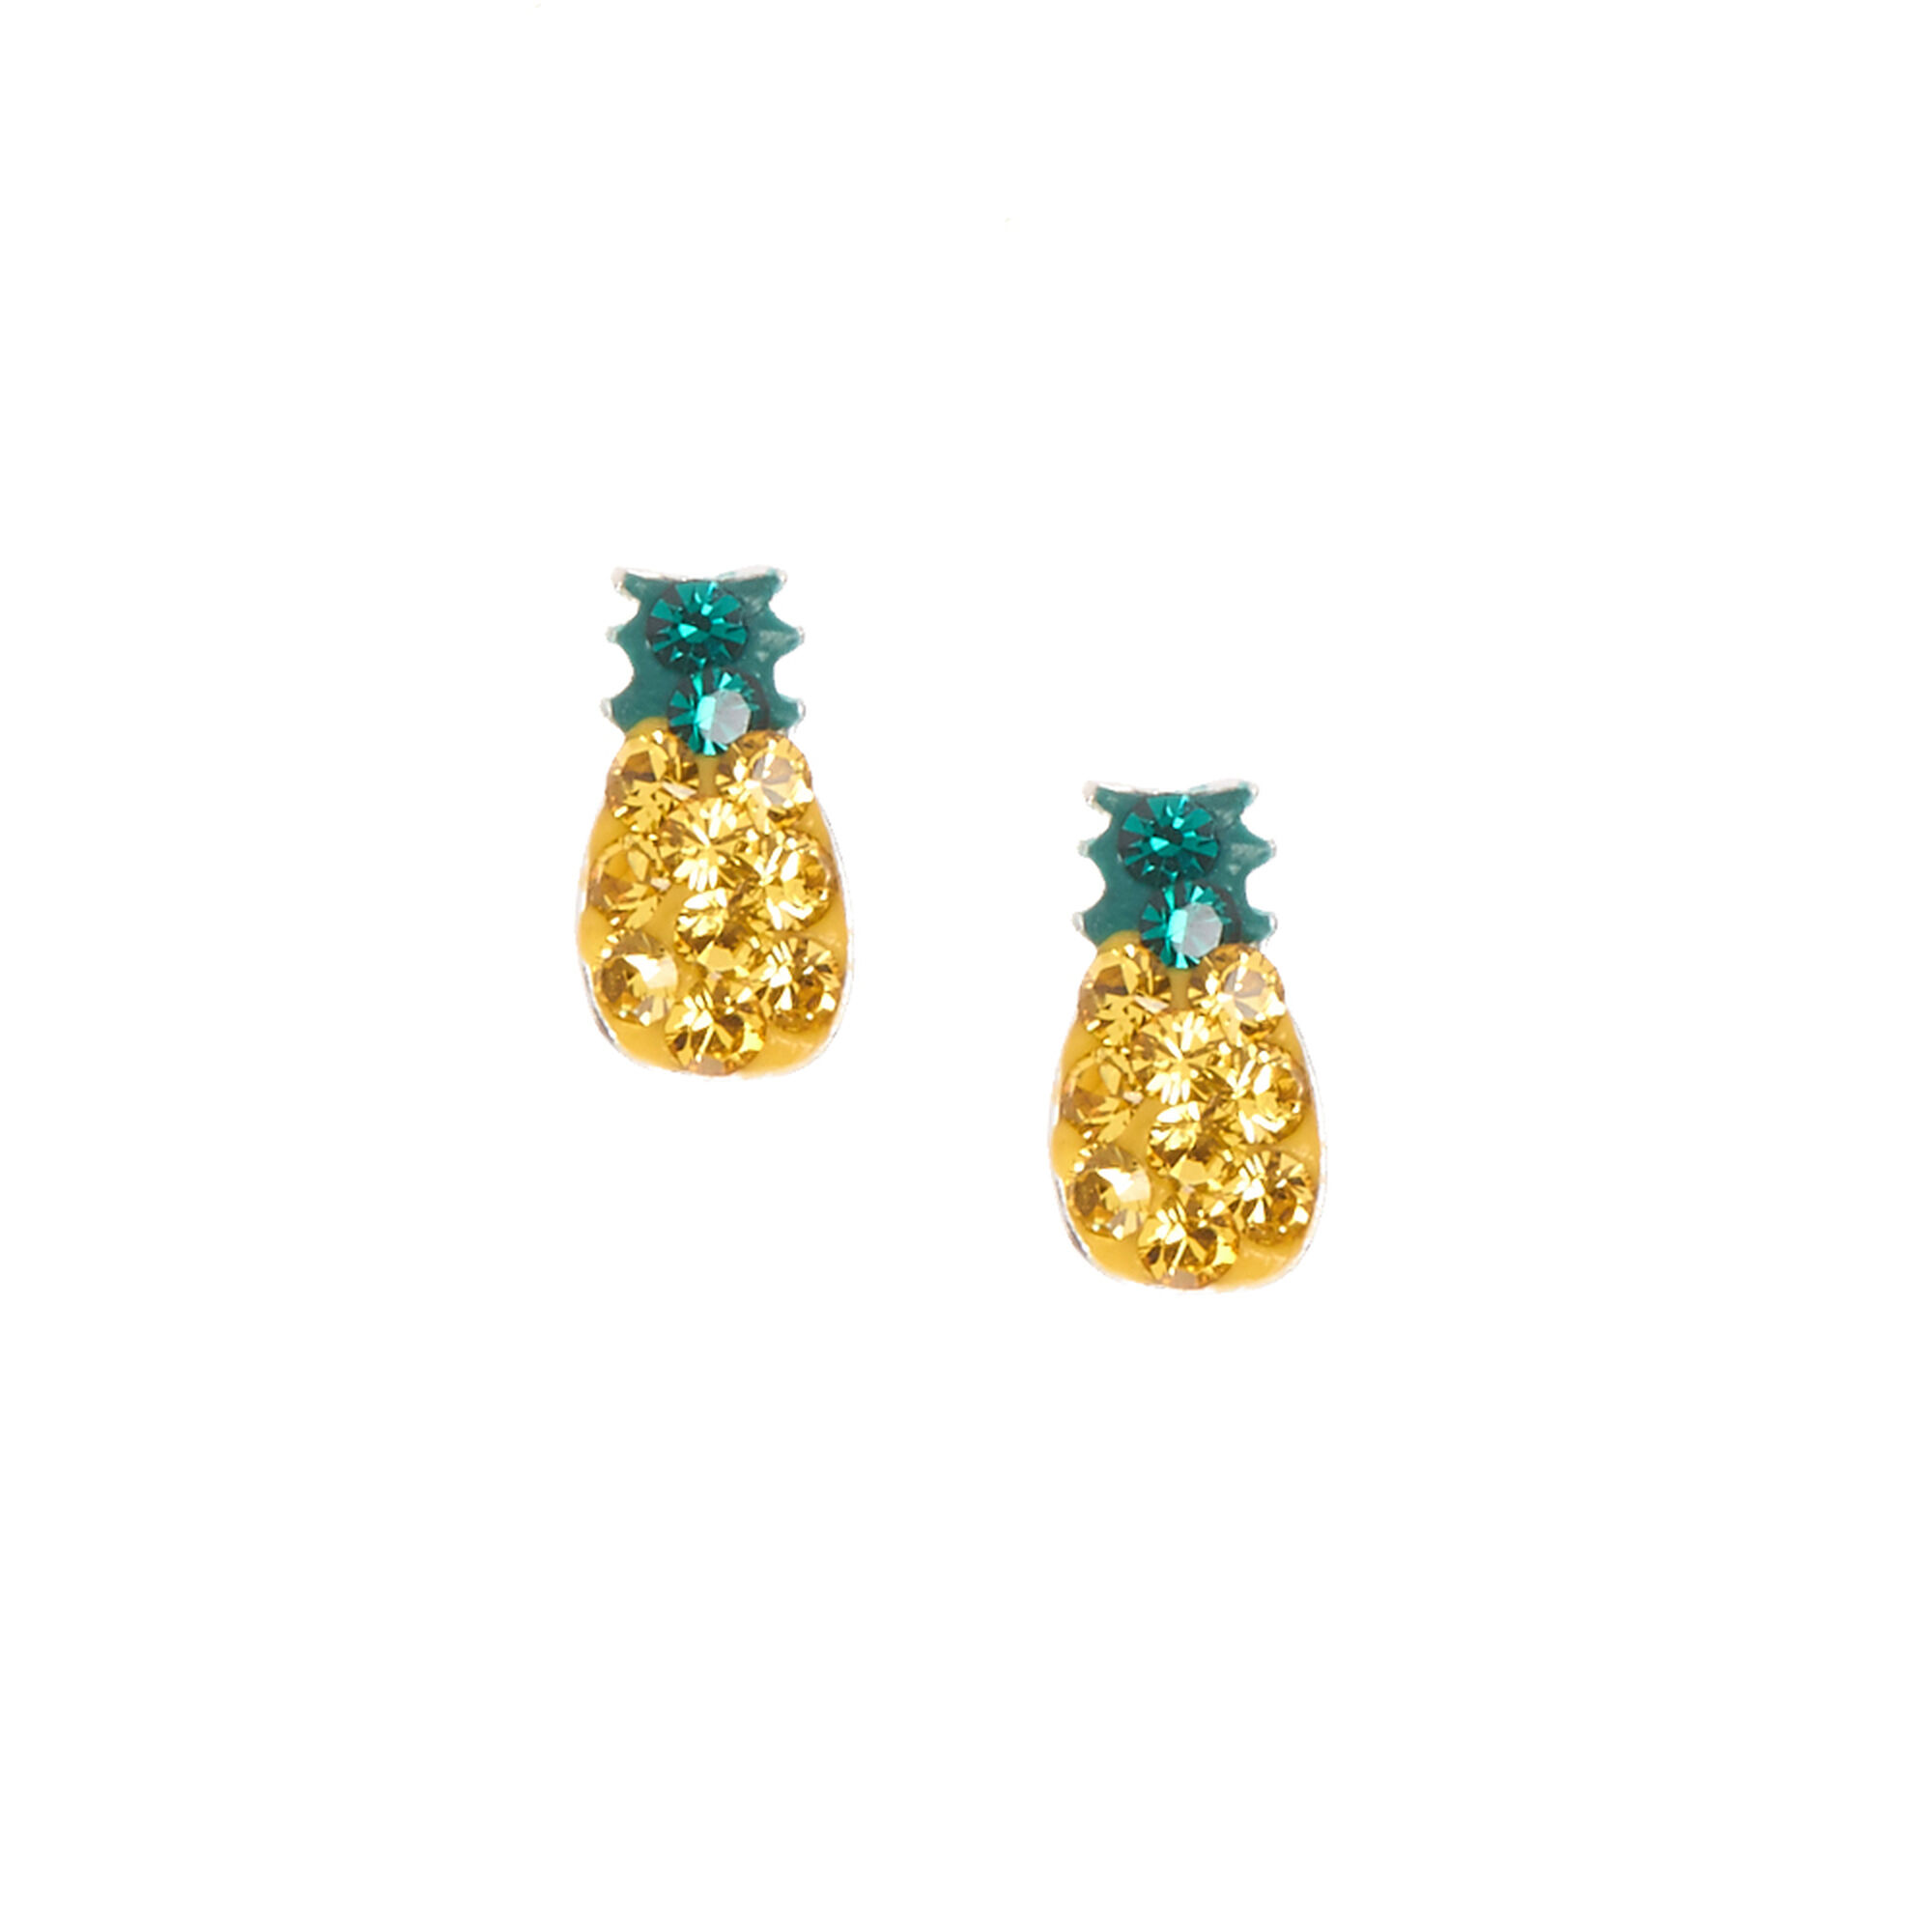 claire earrings us pineapple stud s colorful